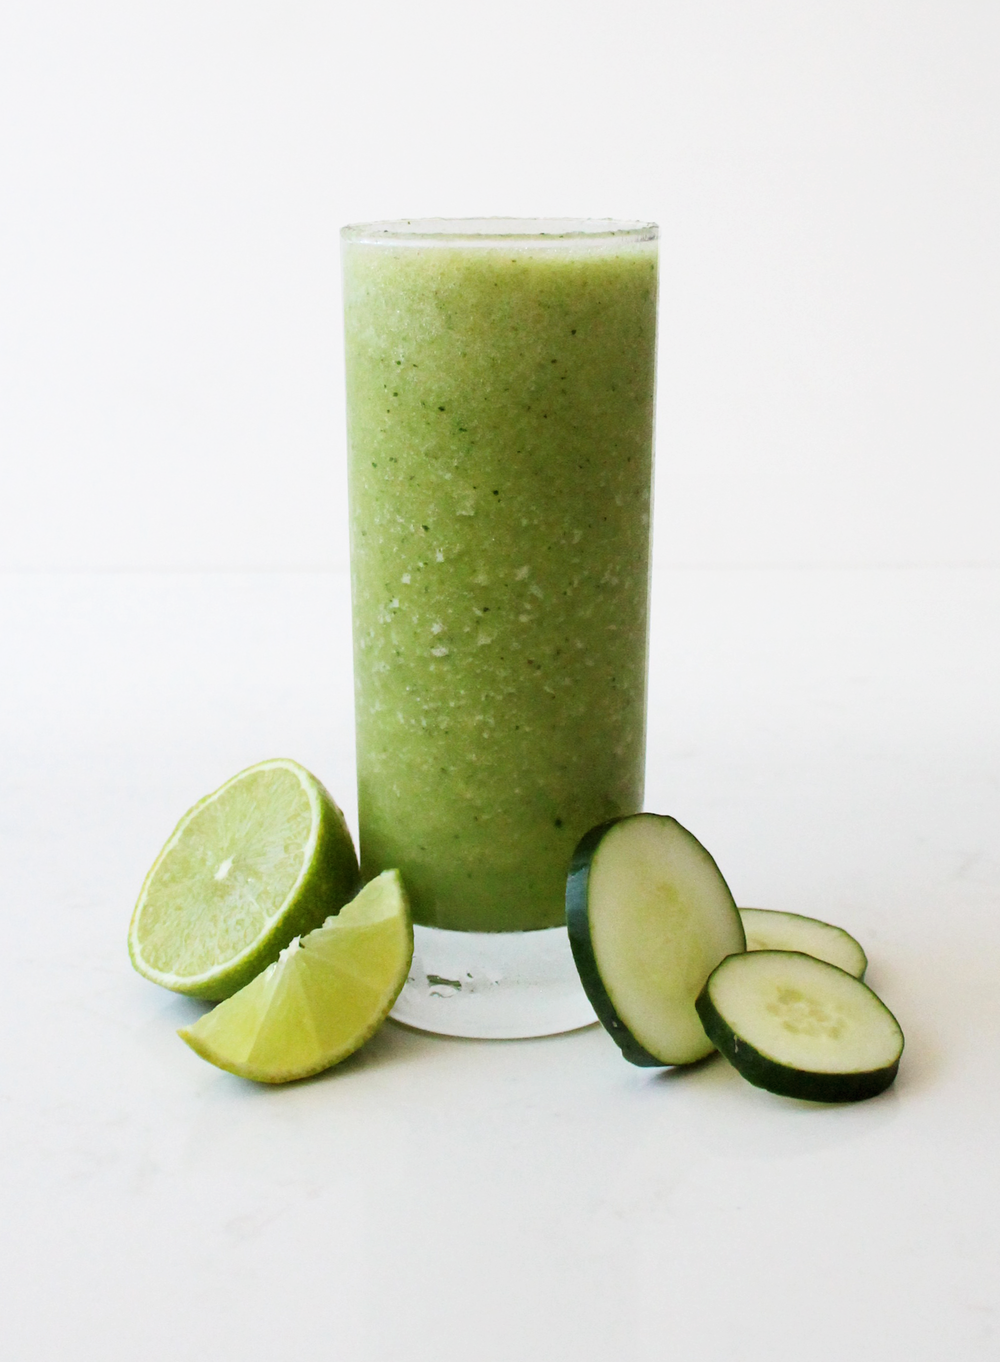 Refresher Clear your mind and quench your thirst with this refreshing smoothie. This is the perfect after workout refresher with its cucumber and pineapple base, combined with banana and lime, and a hint of ginger for that extra kick. --- cucumber, pineapple, banana, cold-pressed pineapple juice, cold-pressed ginger juice, lime juice